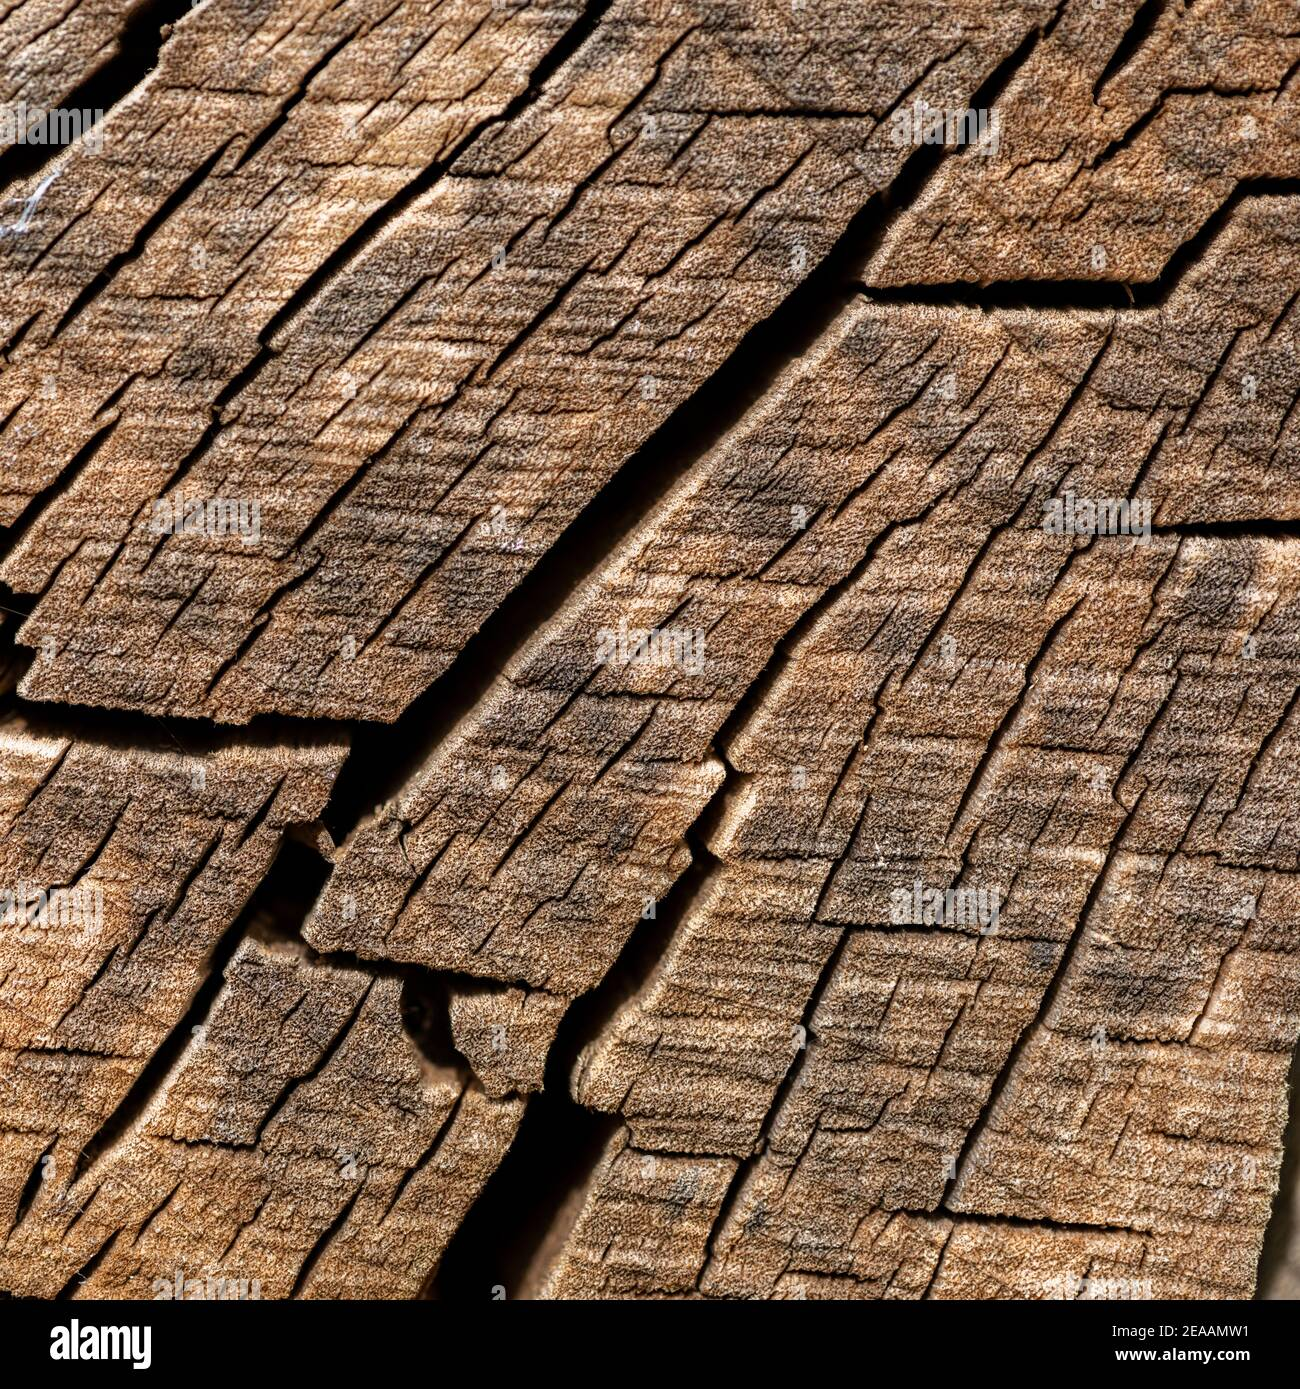 Tree slice with drying cracks. Stock Photo